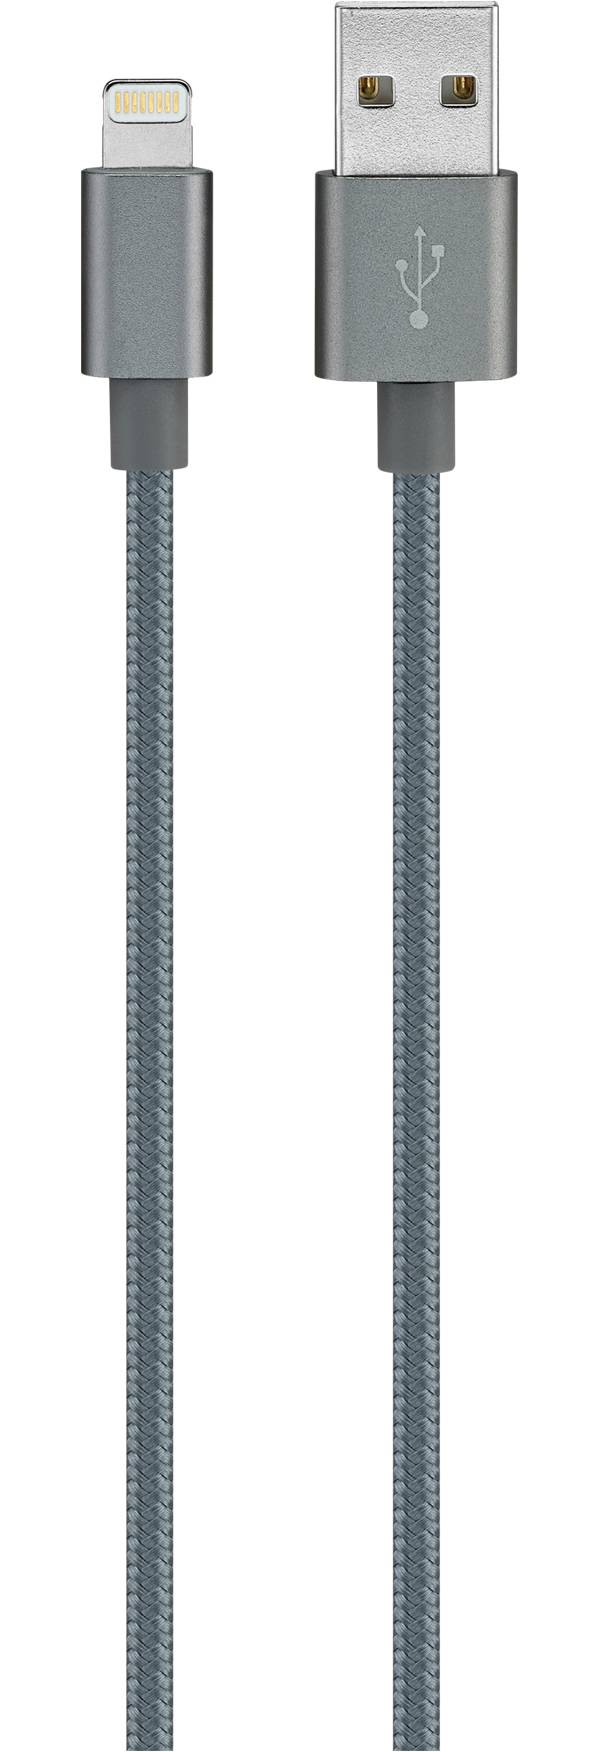 iLIVE 6-foot Lightning Cable product image